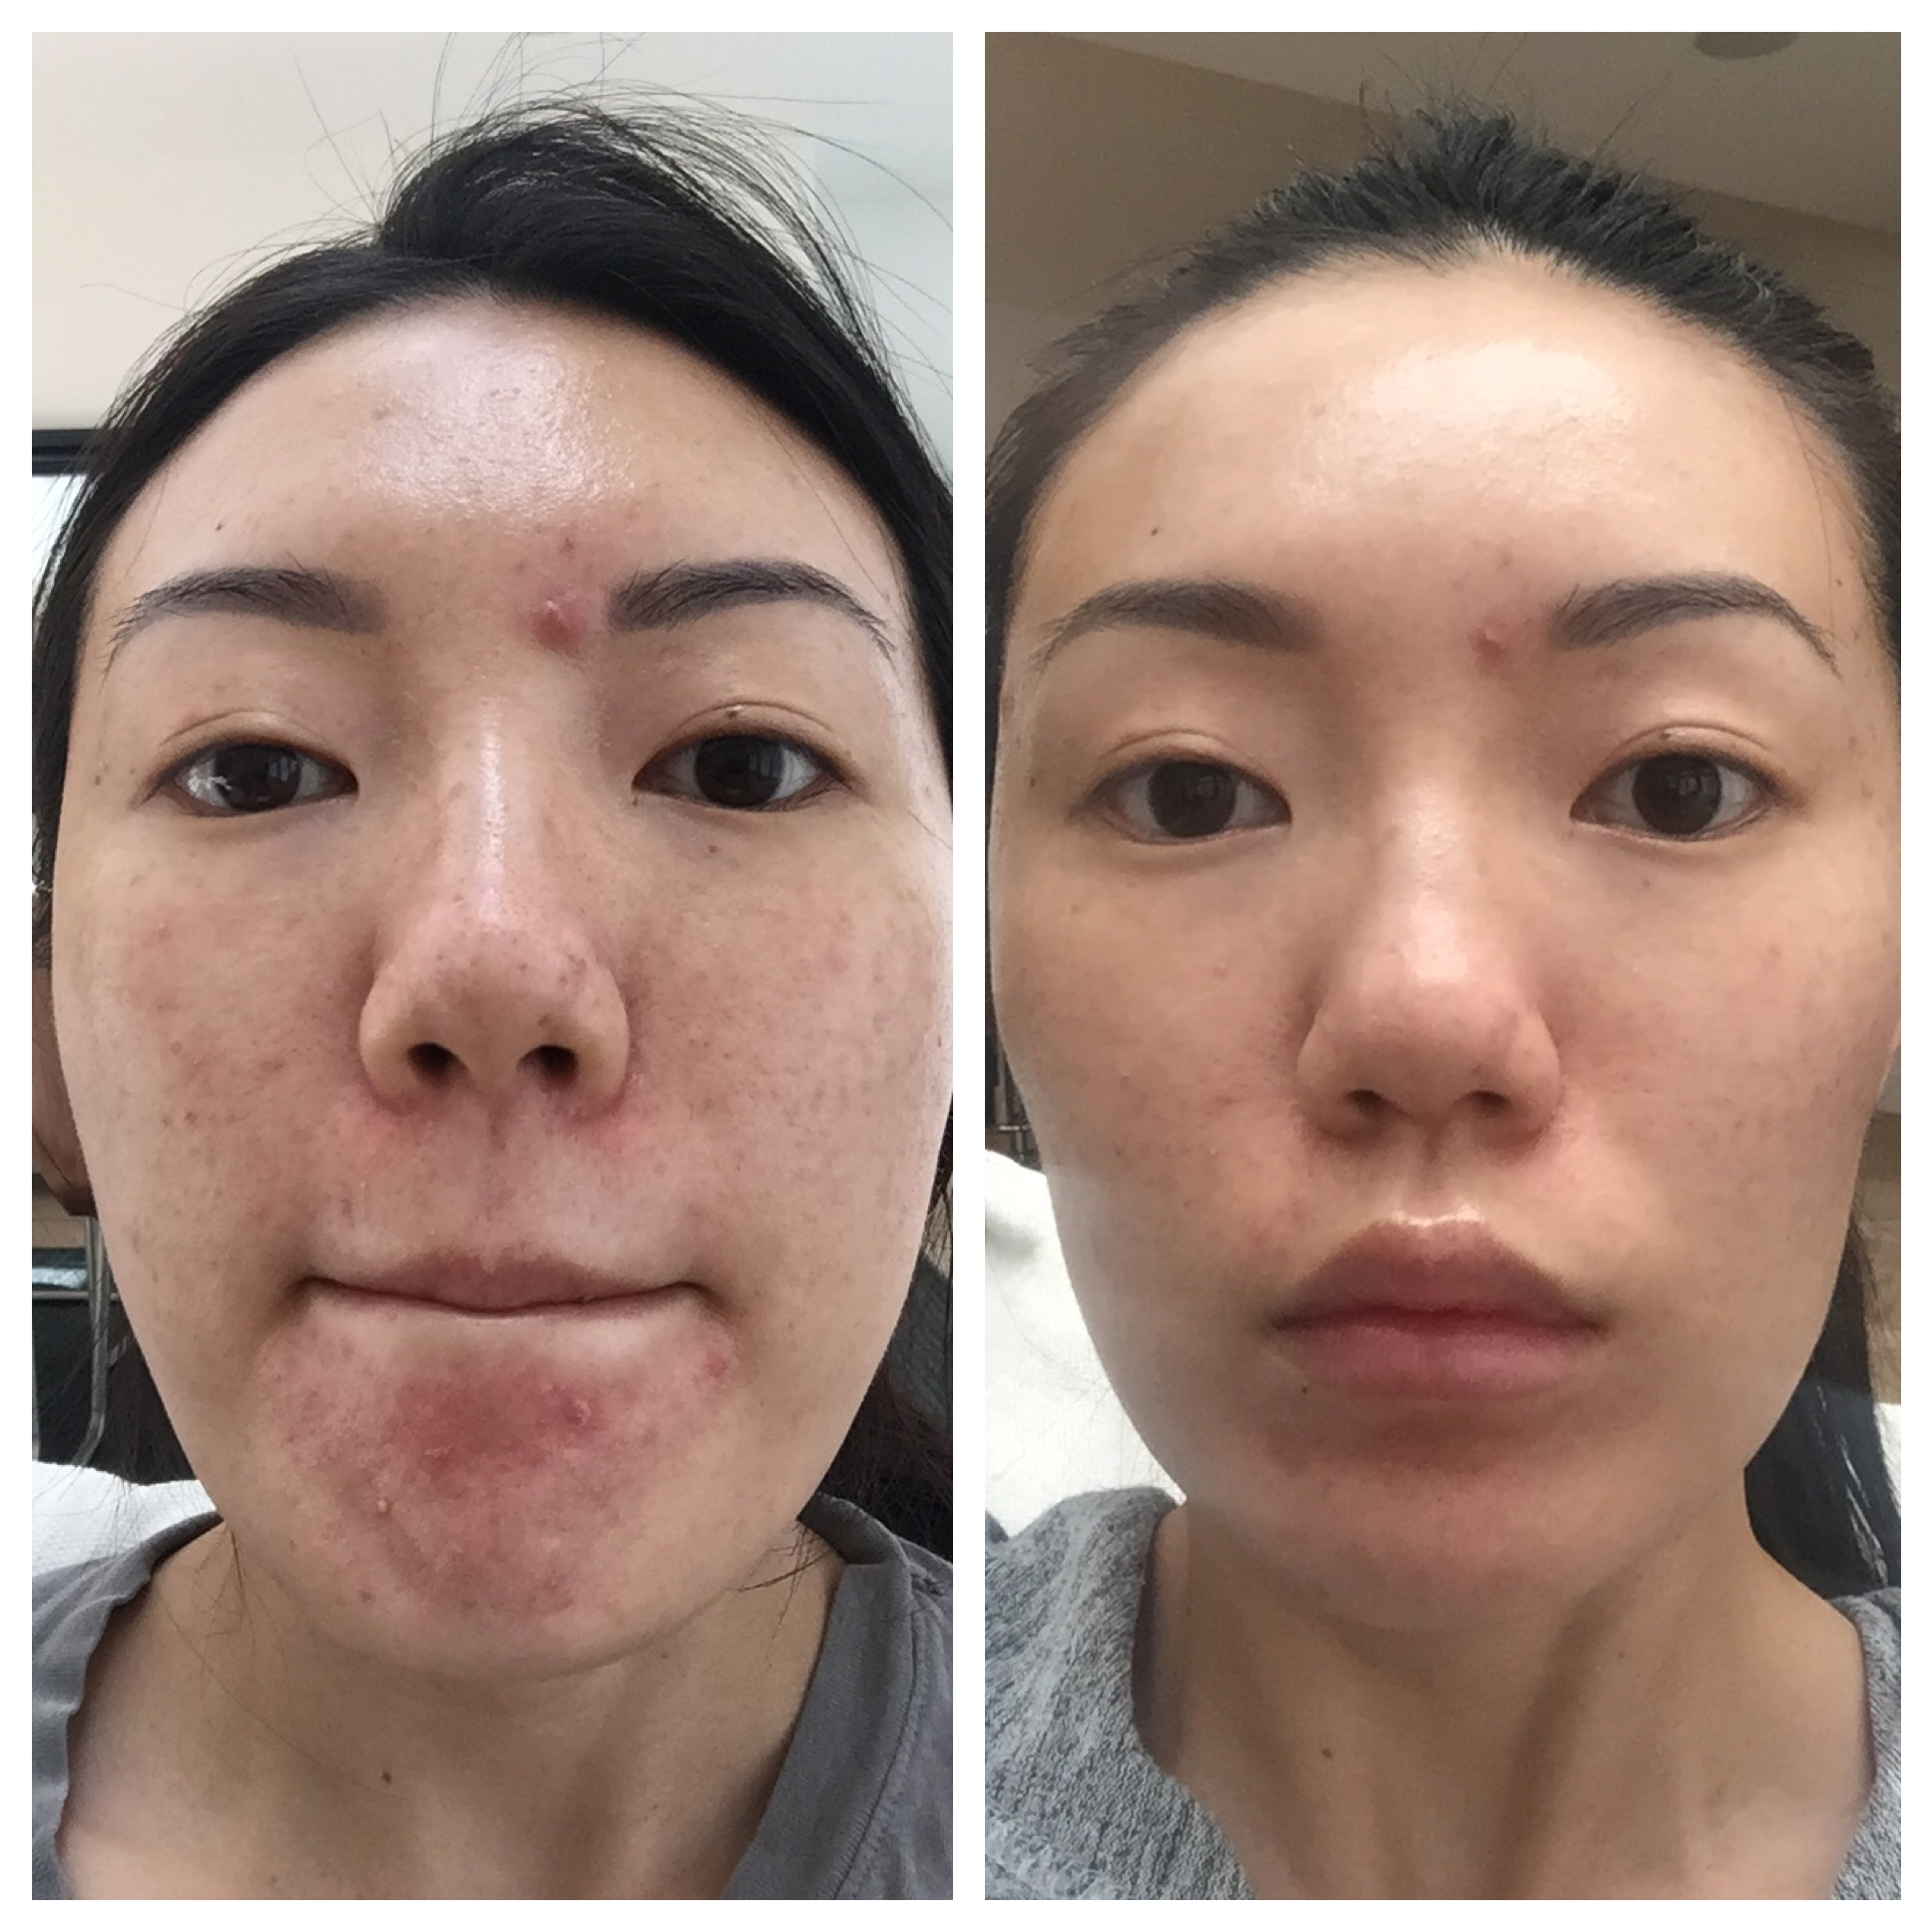 My Peri Dermatitis Skincare Journey